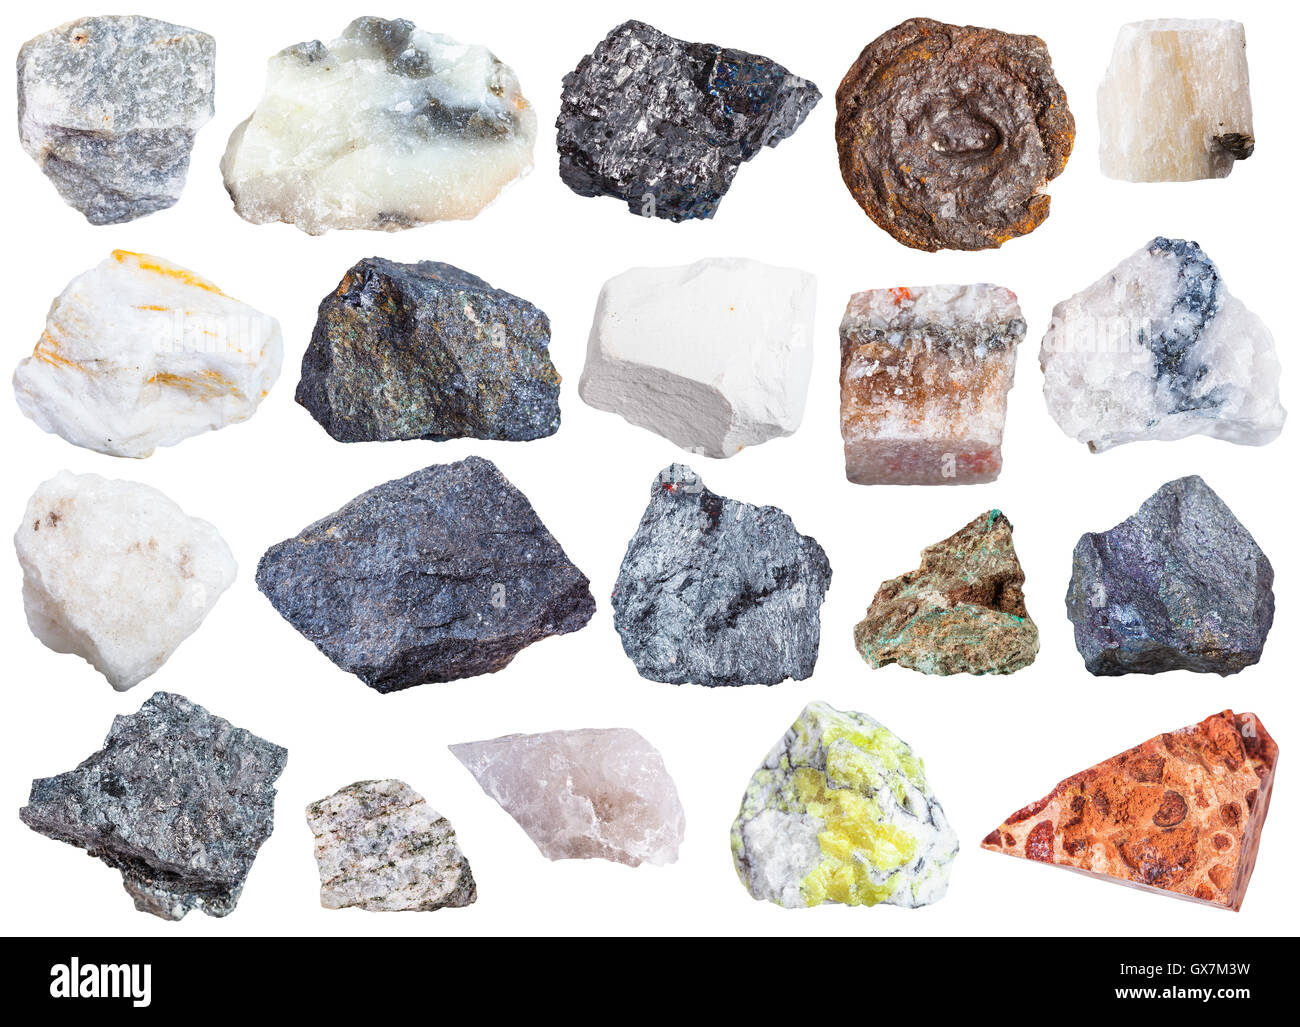 collection of natural mineral specimens - apatite, anhydrite, chalk, molybdenite, bornite, halite, chromite, wolframite, - Stock Image